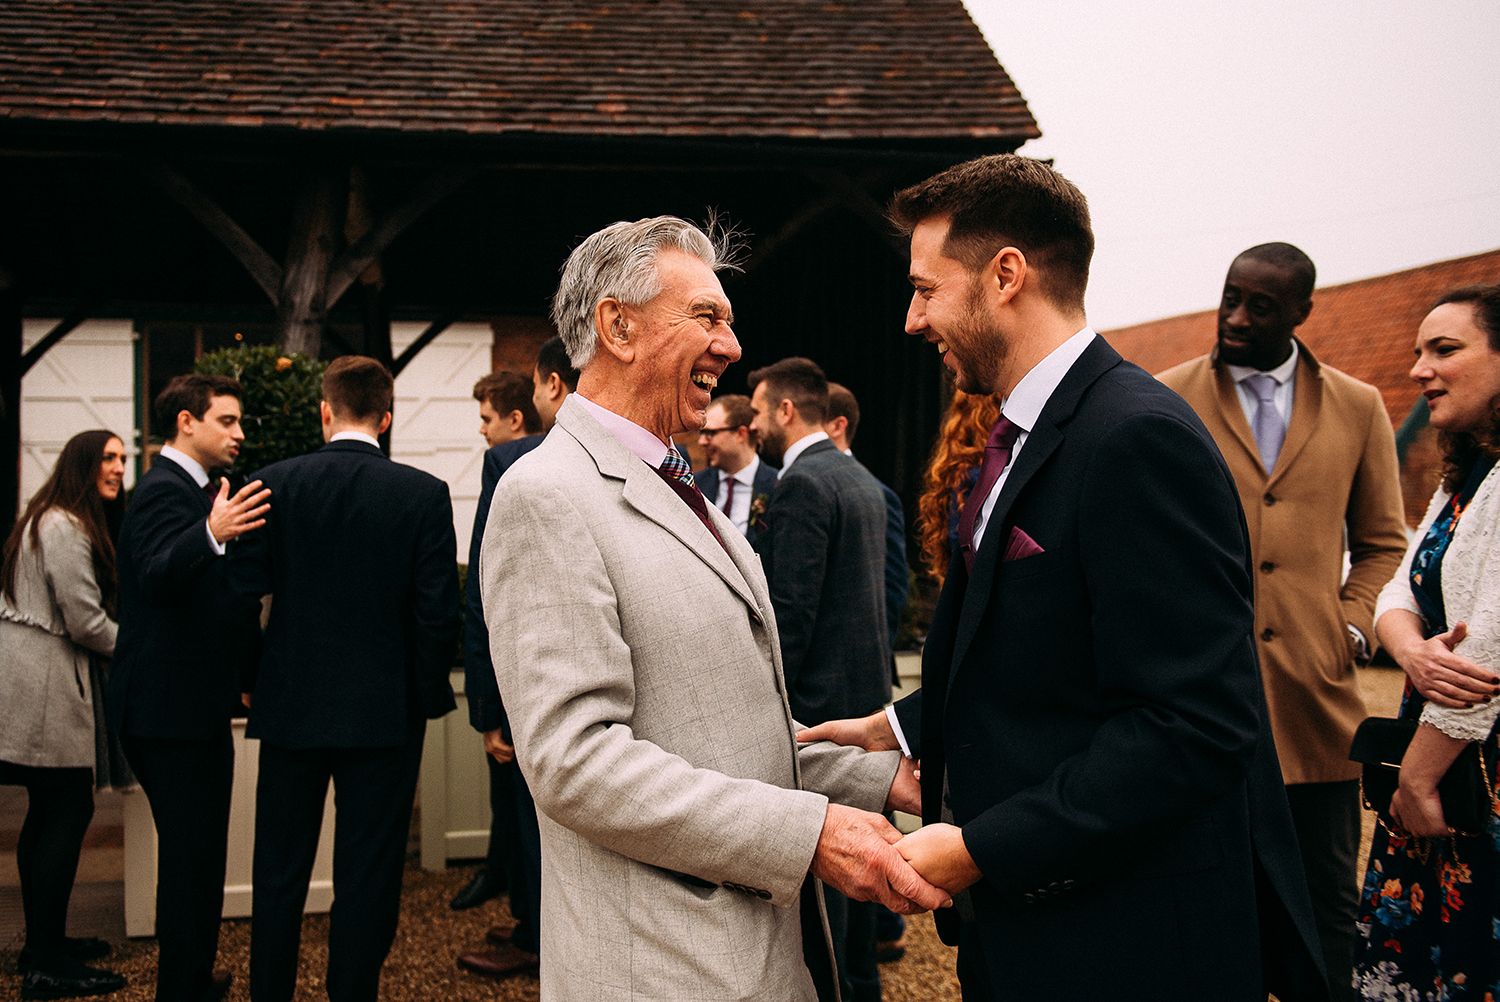 Groom greeting his grandfather